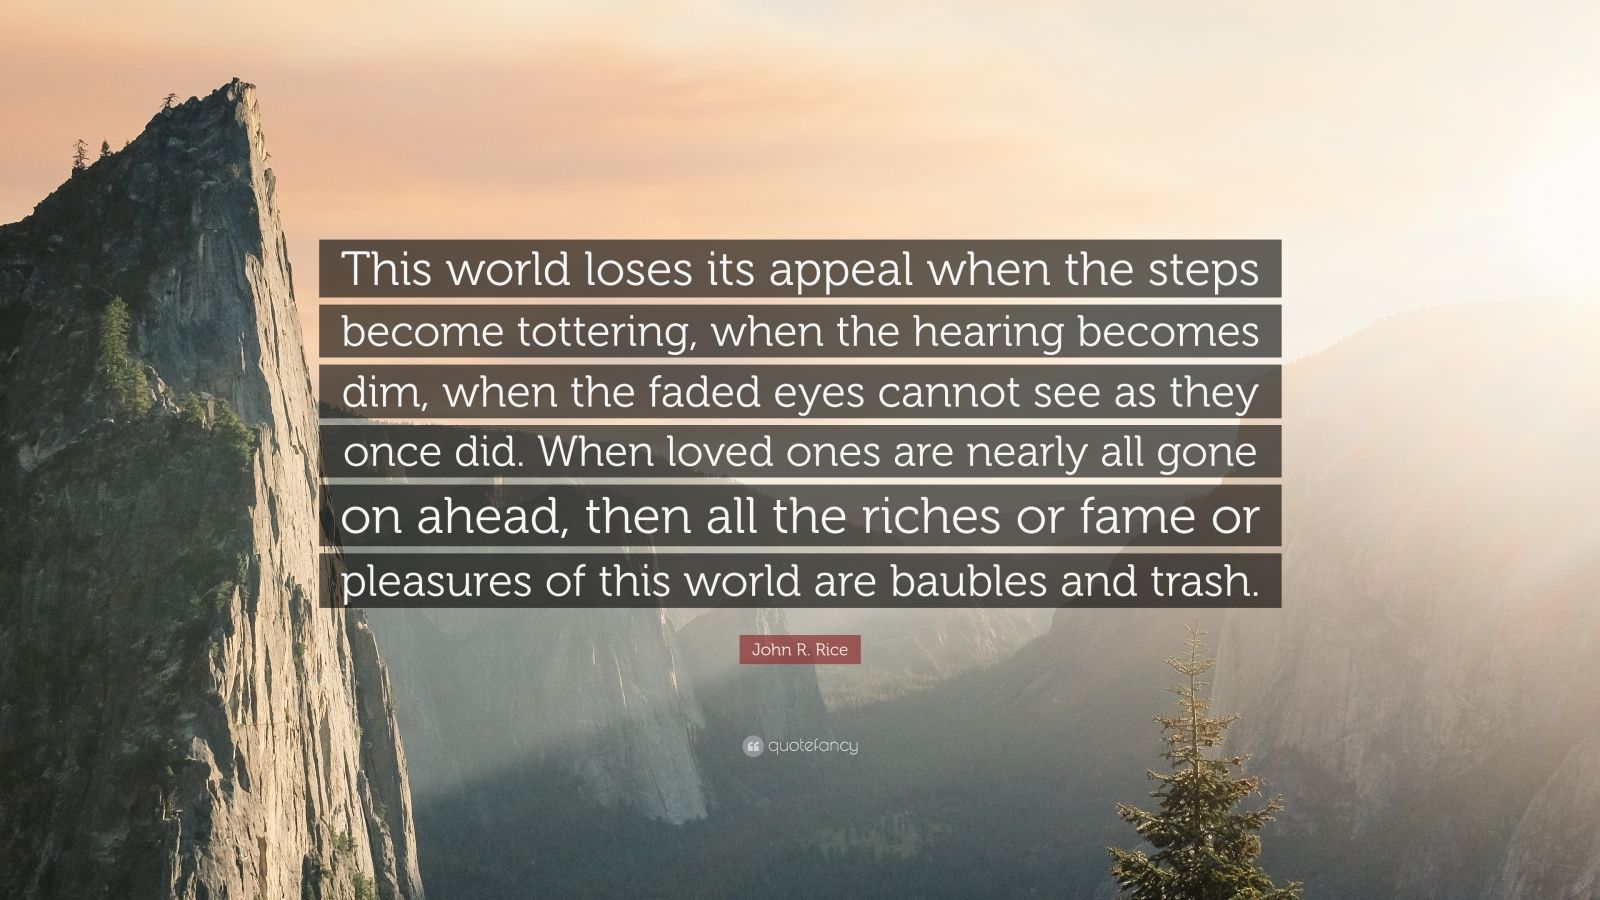 """John R. Rice Quote: """"This world loses its appeal when the steps become tottering, when the hearing becomes dim, when the faded eyes cannot see as they once did. When loved ones are nearly all gone on ahead, then all the riches or fame or pleasures of this world are baubles and trash."""""""